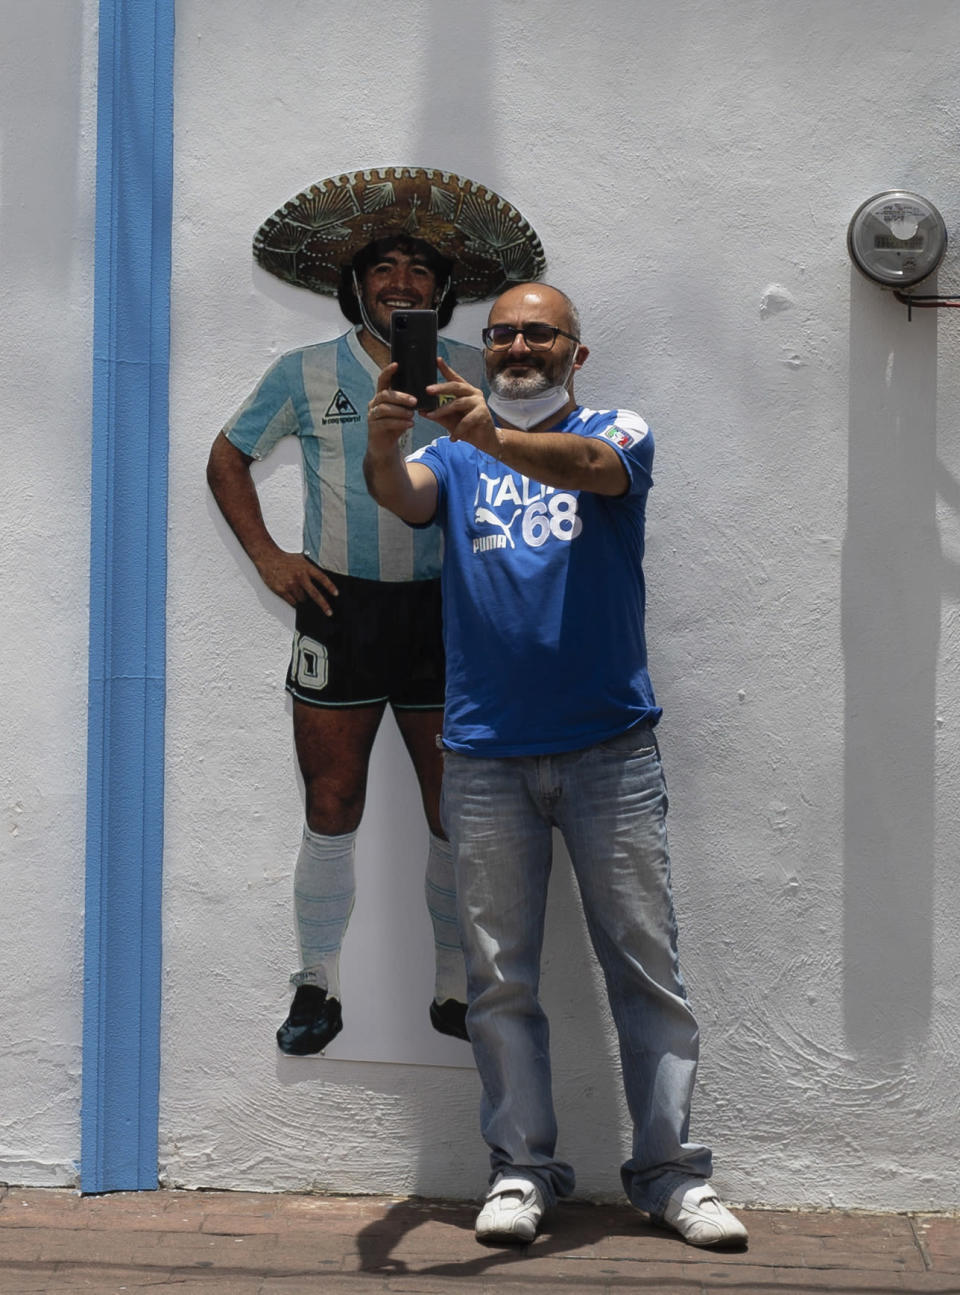 A tourist takes a selfie in front of the Church of Maradona in San Andres Cholula, Puebla state, Mexico, Sunday, July 18, 2021. The Church of Maradona in Mexico, dedicated to late soccer great Diego Armando Maradona, was founded a few weeks ago by Argentine expatriate Buchet, who also owns the pizza parlor next door. (AP Photo/Marco Ugarte)